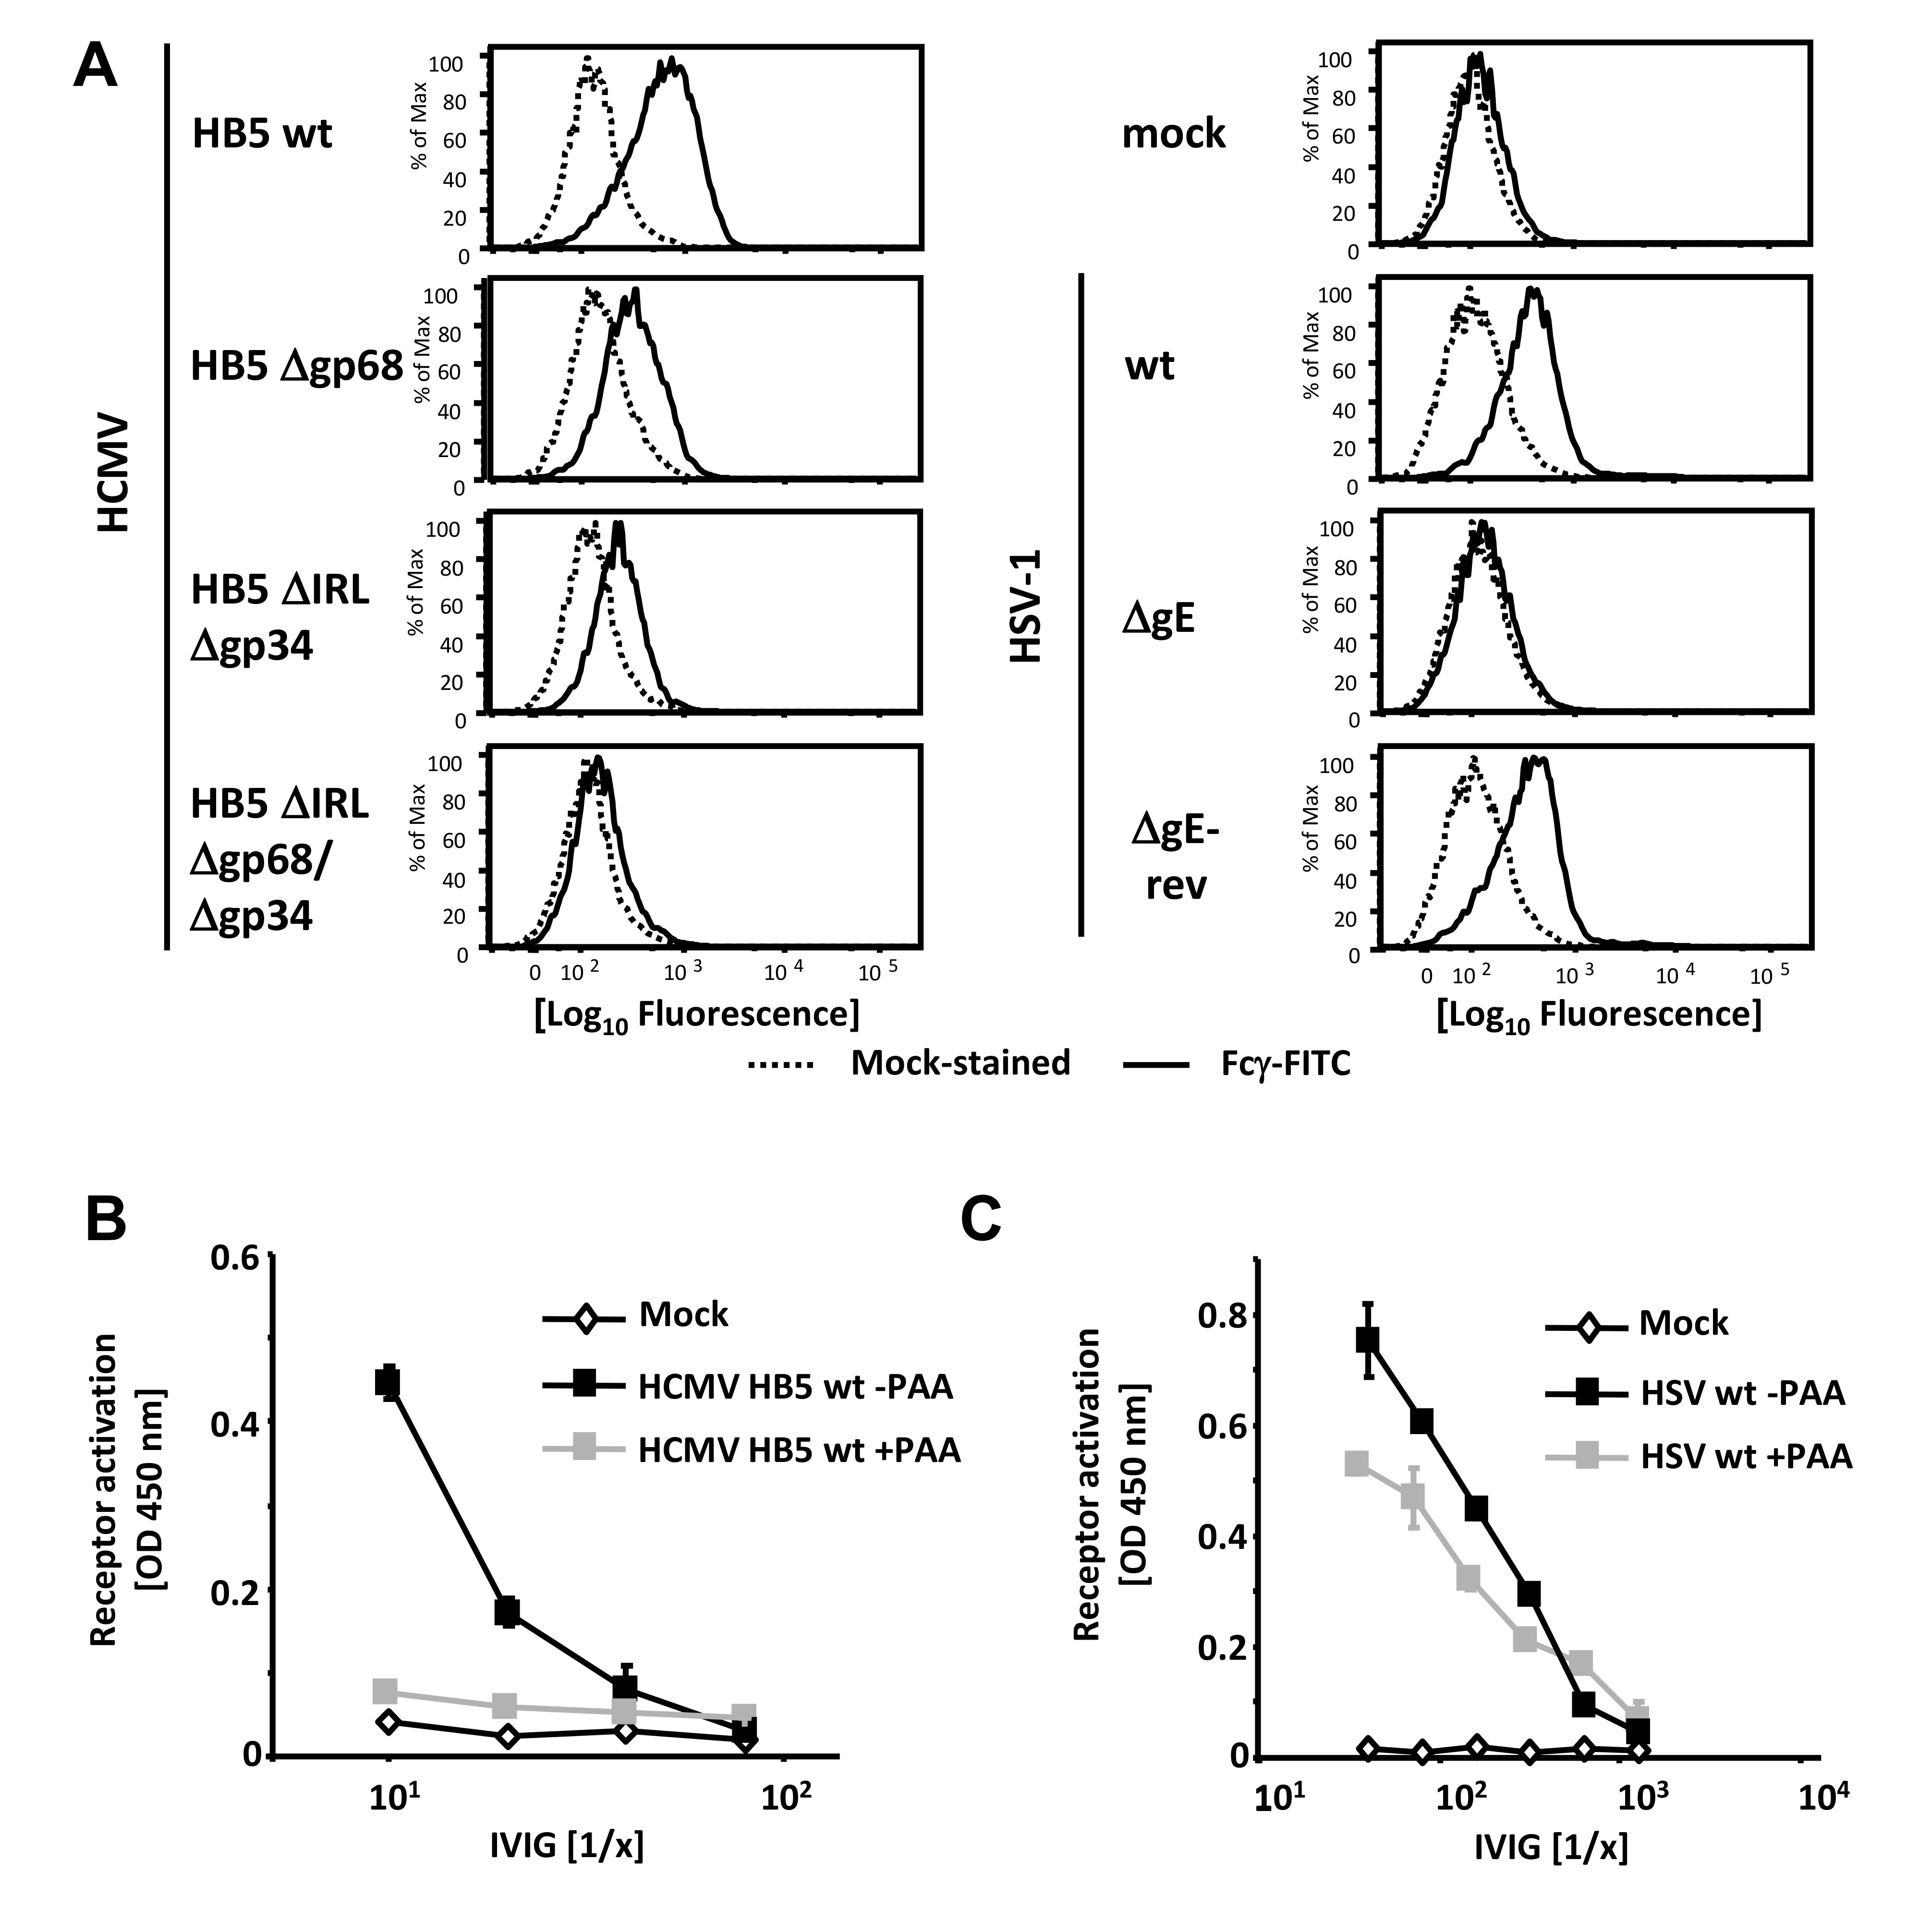 Viral FcγRs bind Fcγ on the cell surface and opsonizing IgG dependent FcγR activation is restricted to the late phase of HCMV but not HSV replication.